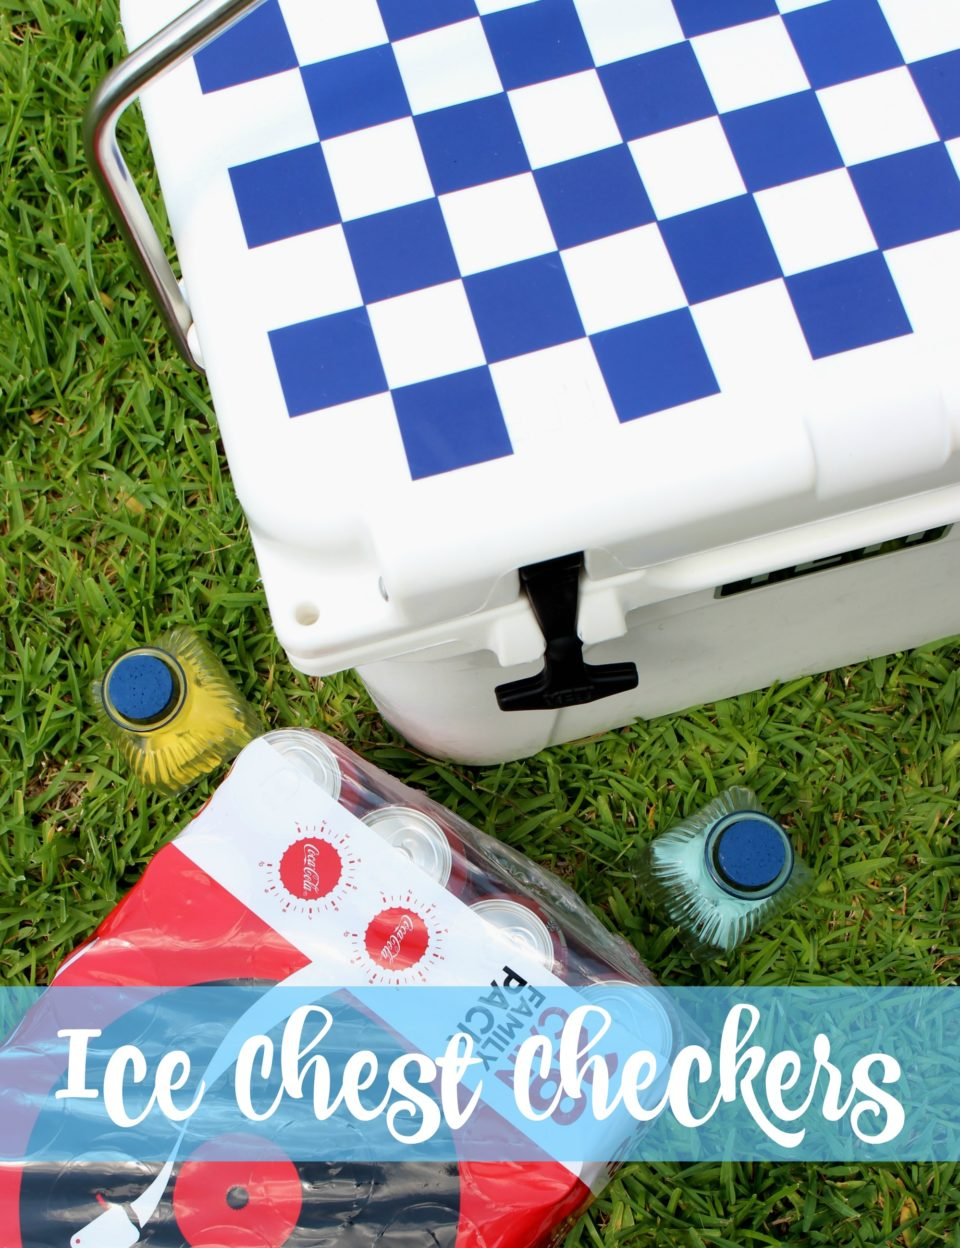 Ice Chest Checkers With Sea Shells